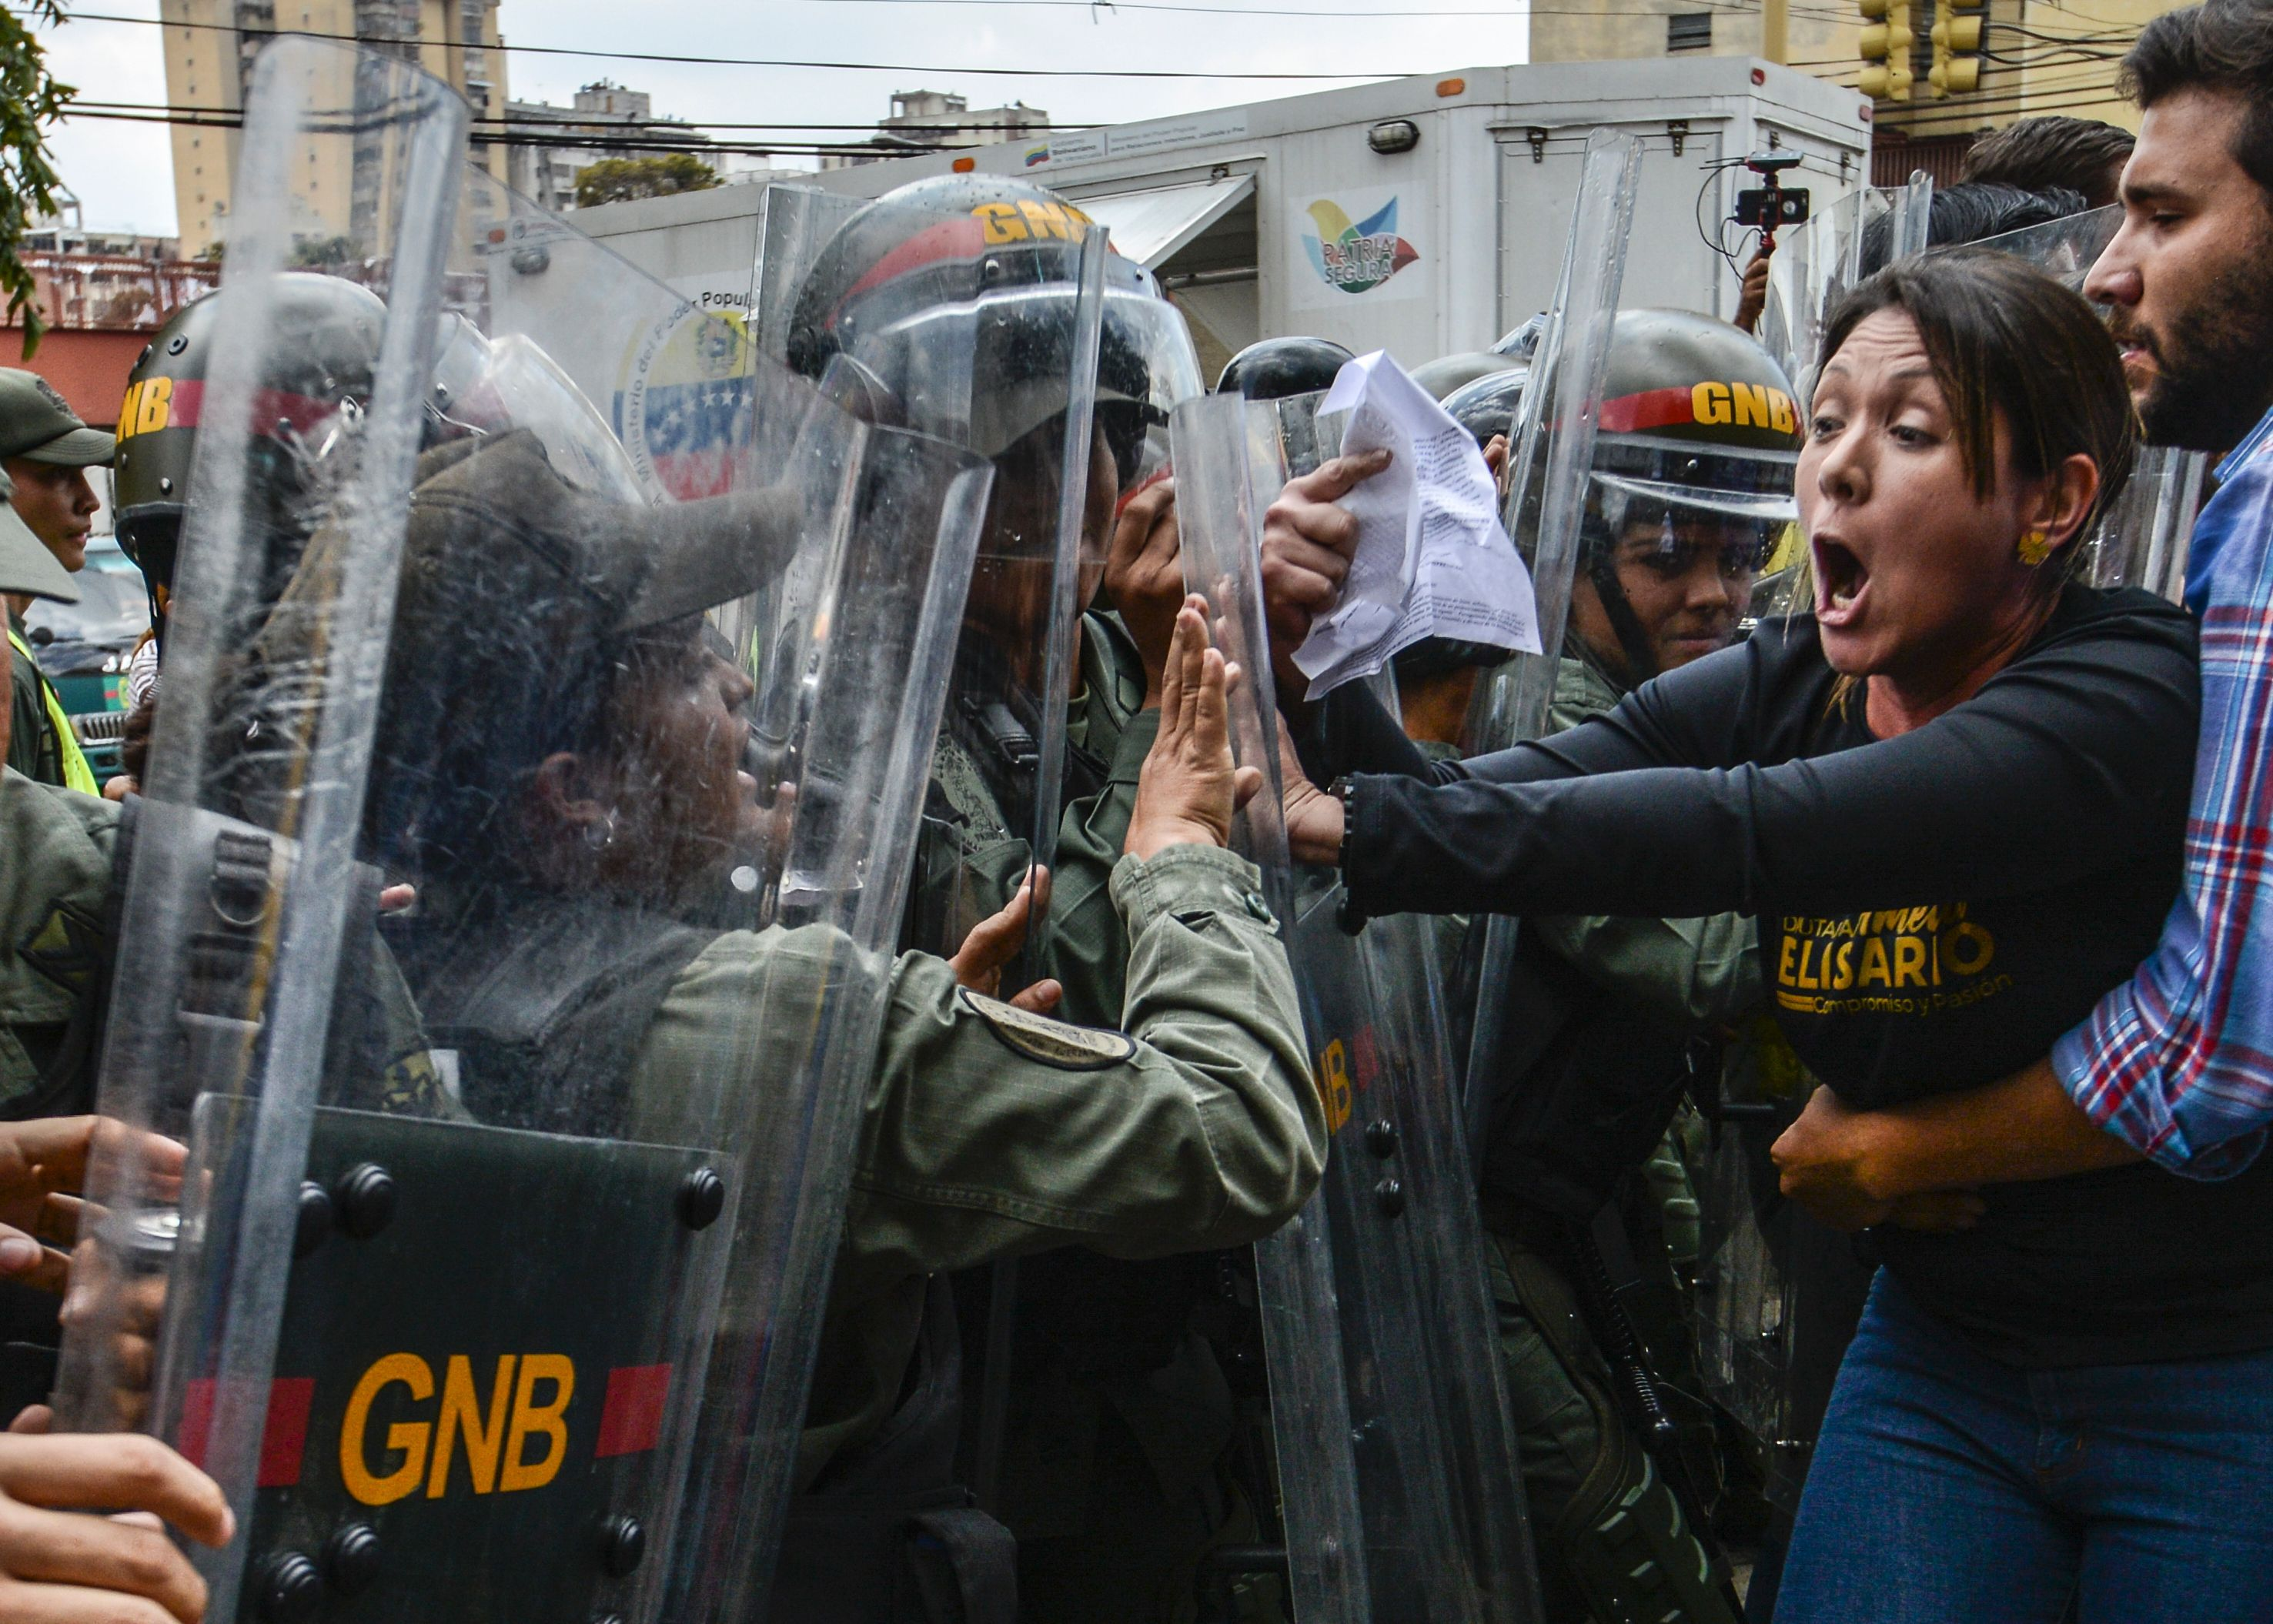 "TOPSHOT - Venezuelan opposition deputy Amelia Belisario (2nd-R) scuffles with National Guard personnel in riot gear during a protest in front of the Supreme Court in Caracas on March 30, 2017. Venezuela's Supreme Court took over legislative powers Thursday from the opposition-majority National Assembly, whose speaker accused leftist President Nicolas Maduro of staging a ""coup."" / AFP PHOTO / JUAN BARRETO / TT / kod 444"